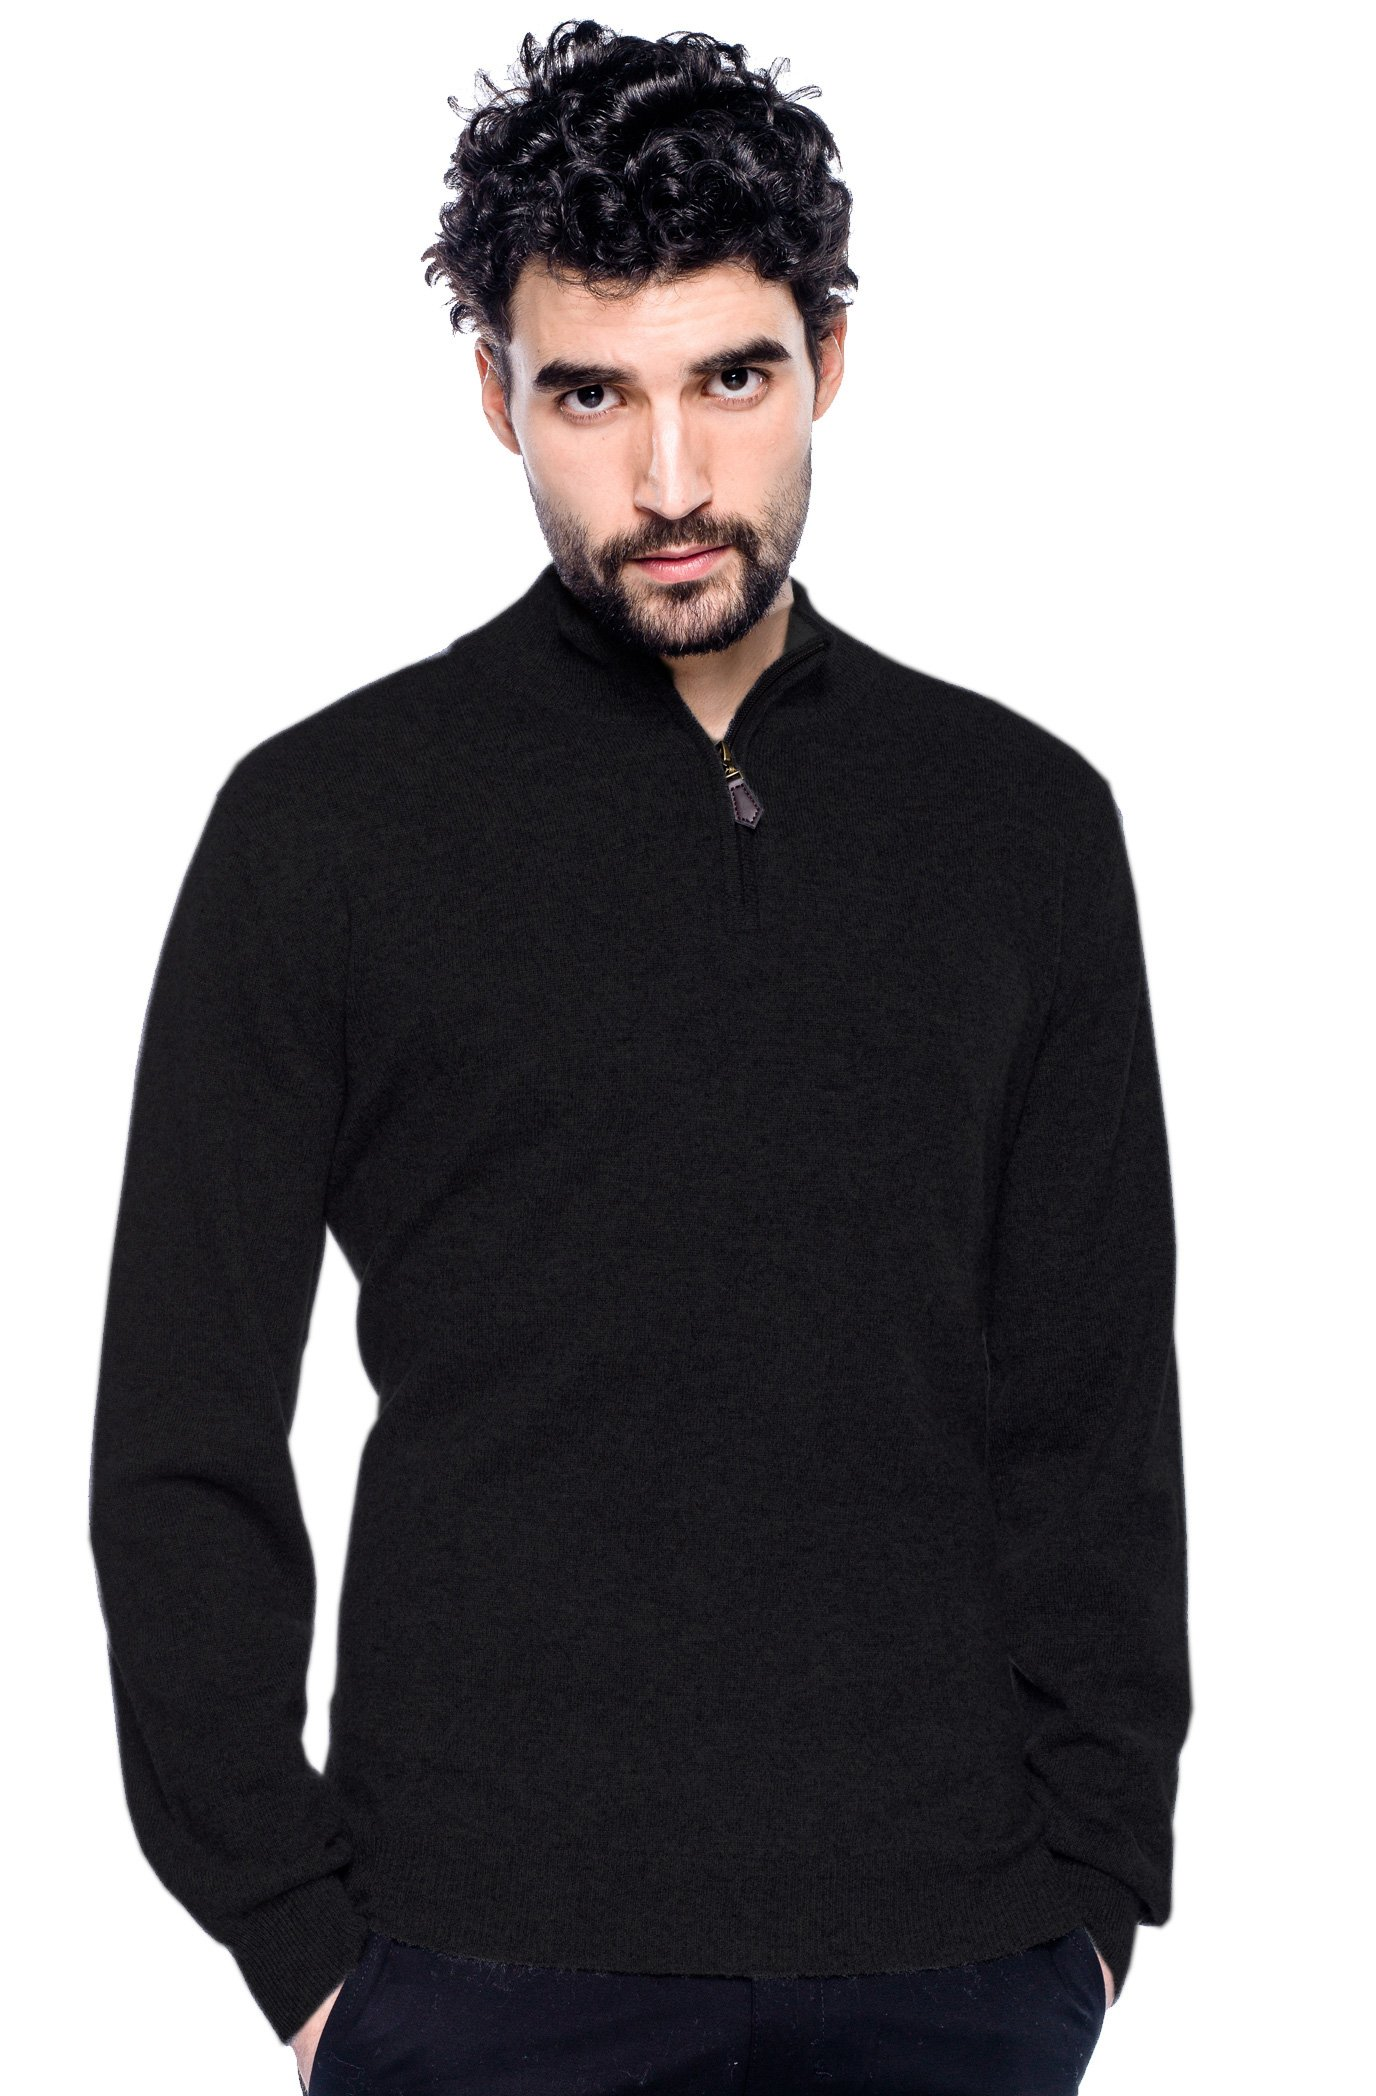 Men 100% Pure Mongolian Cashmere 1/4 Zipped Cashmere Sweater with Elbow Patches,Noir (Black) With Gris Moyen(dark Gray) Patch,Large